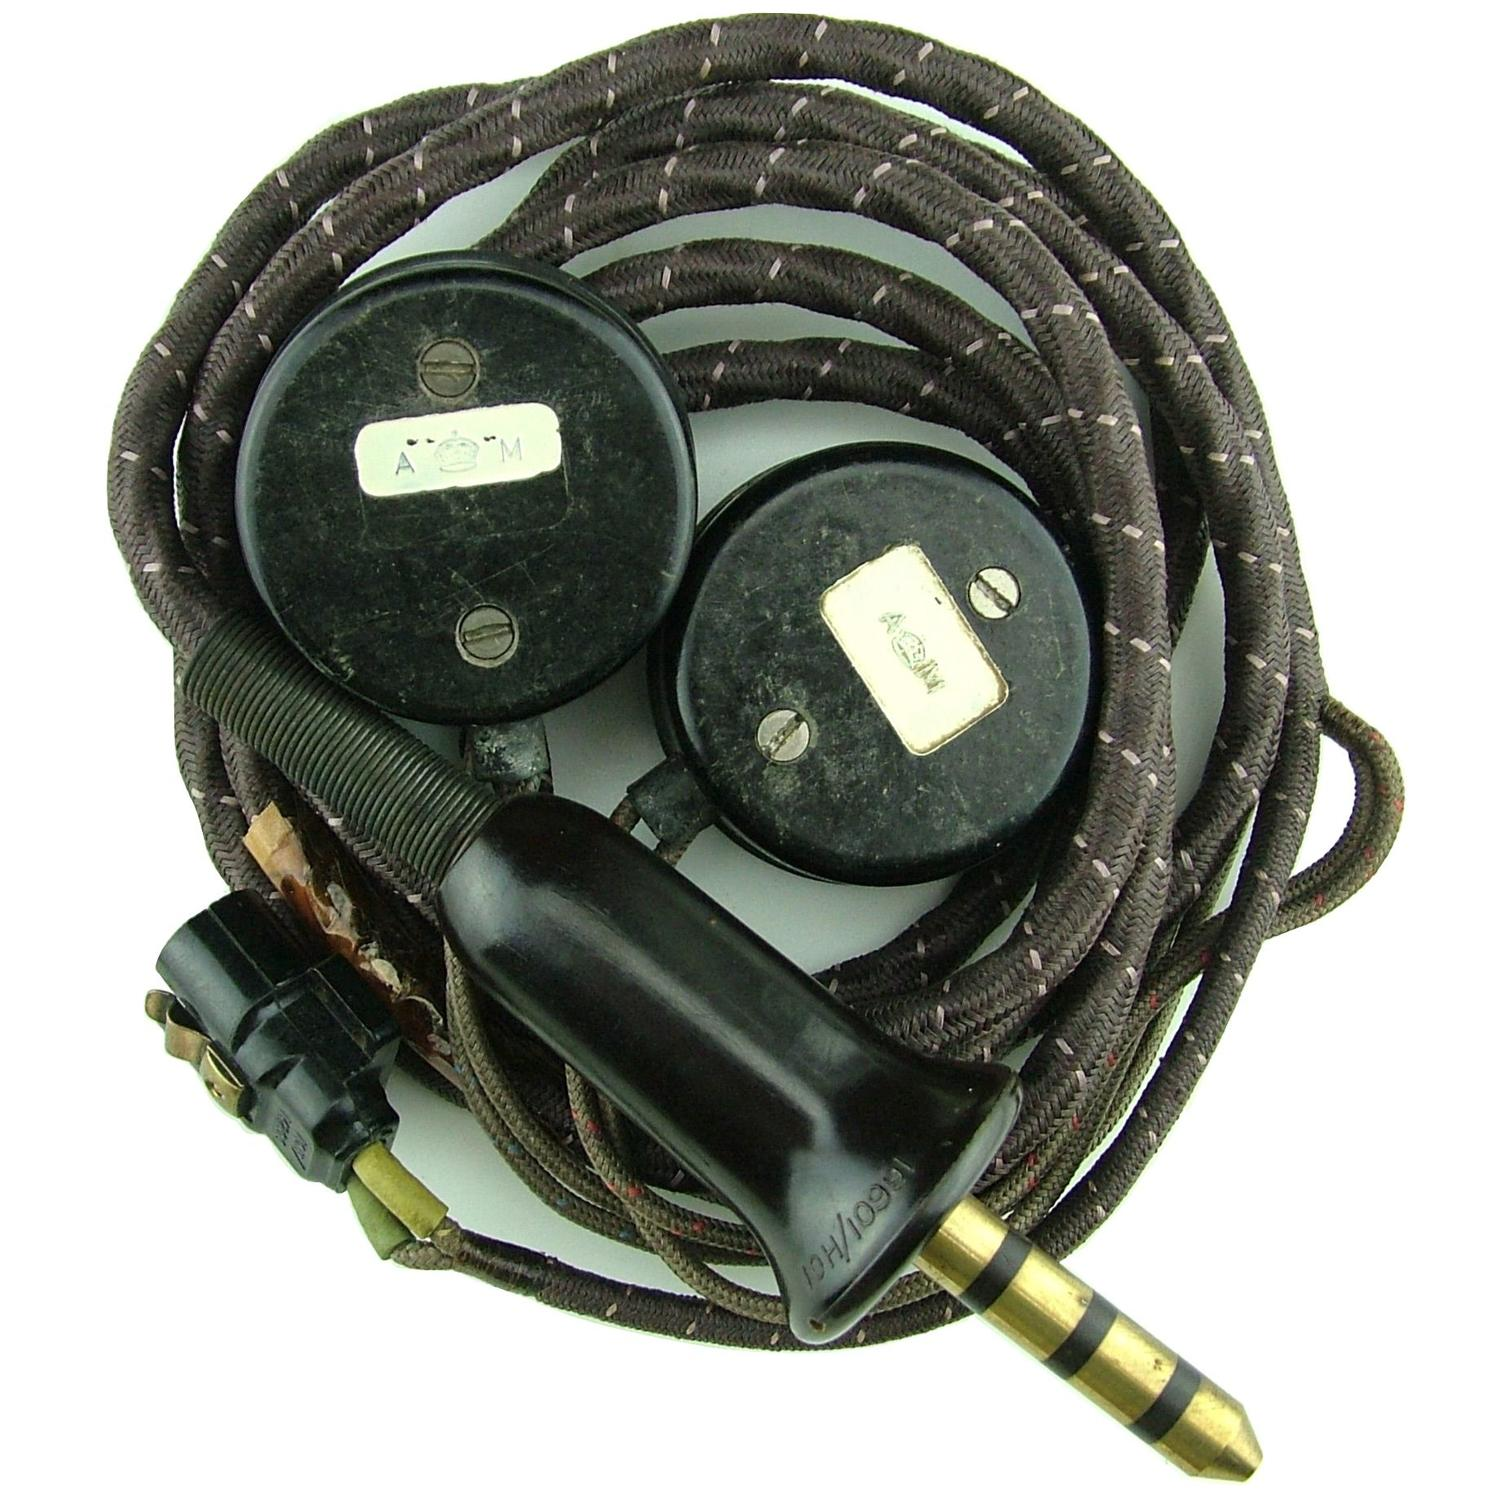 RAF flying helmet wiring loom/receivers